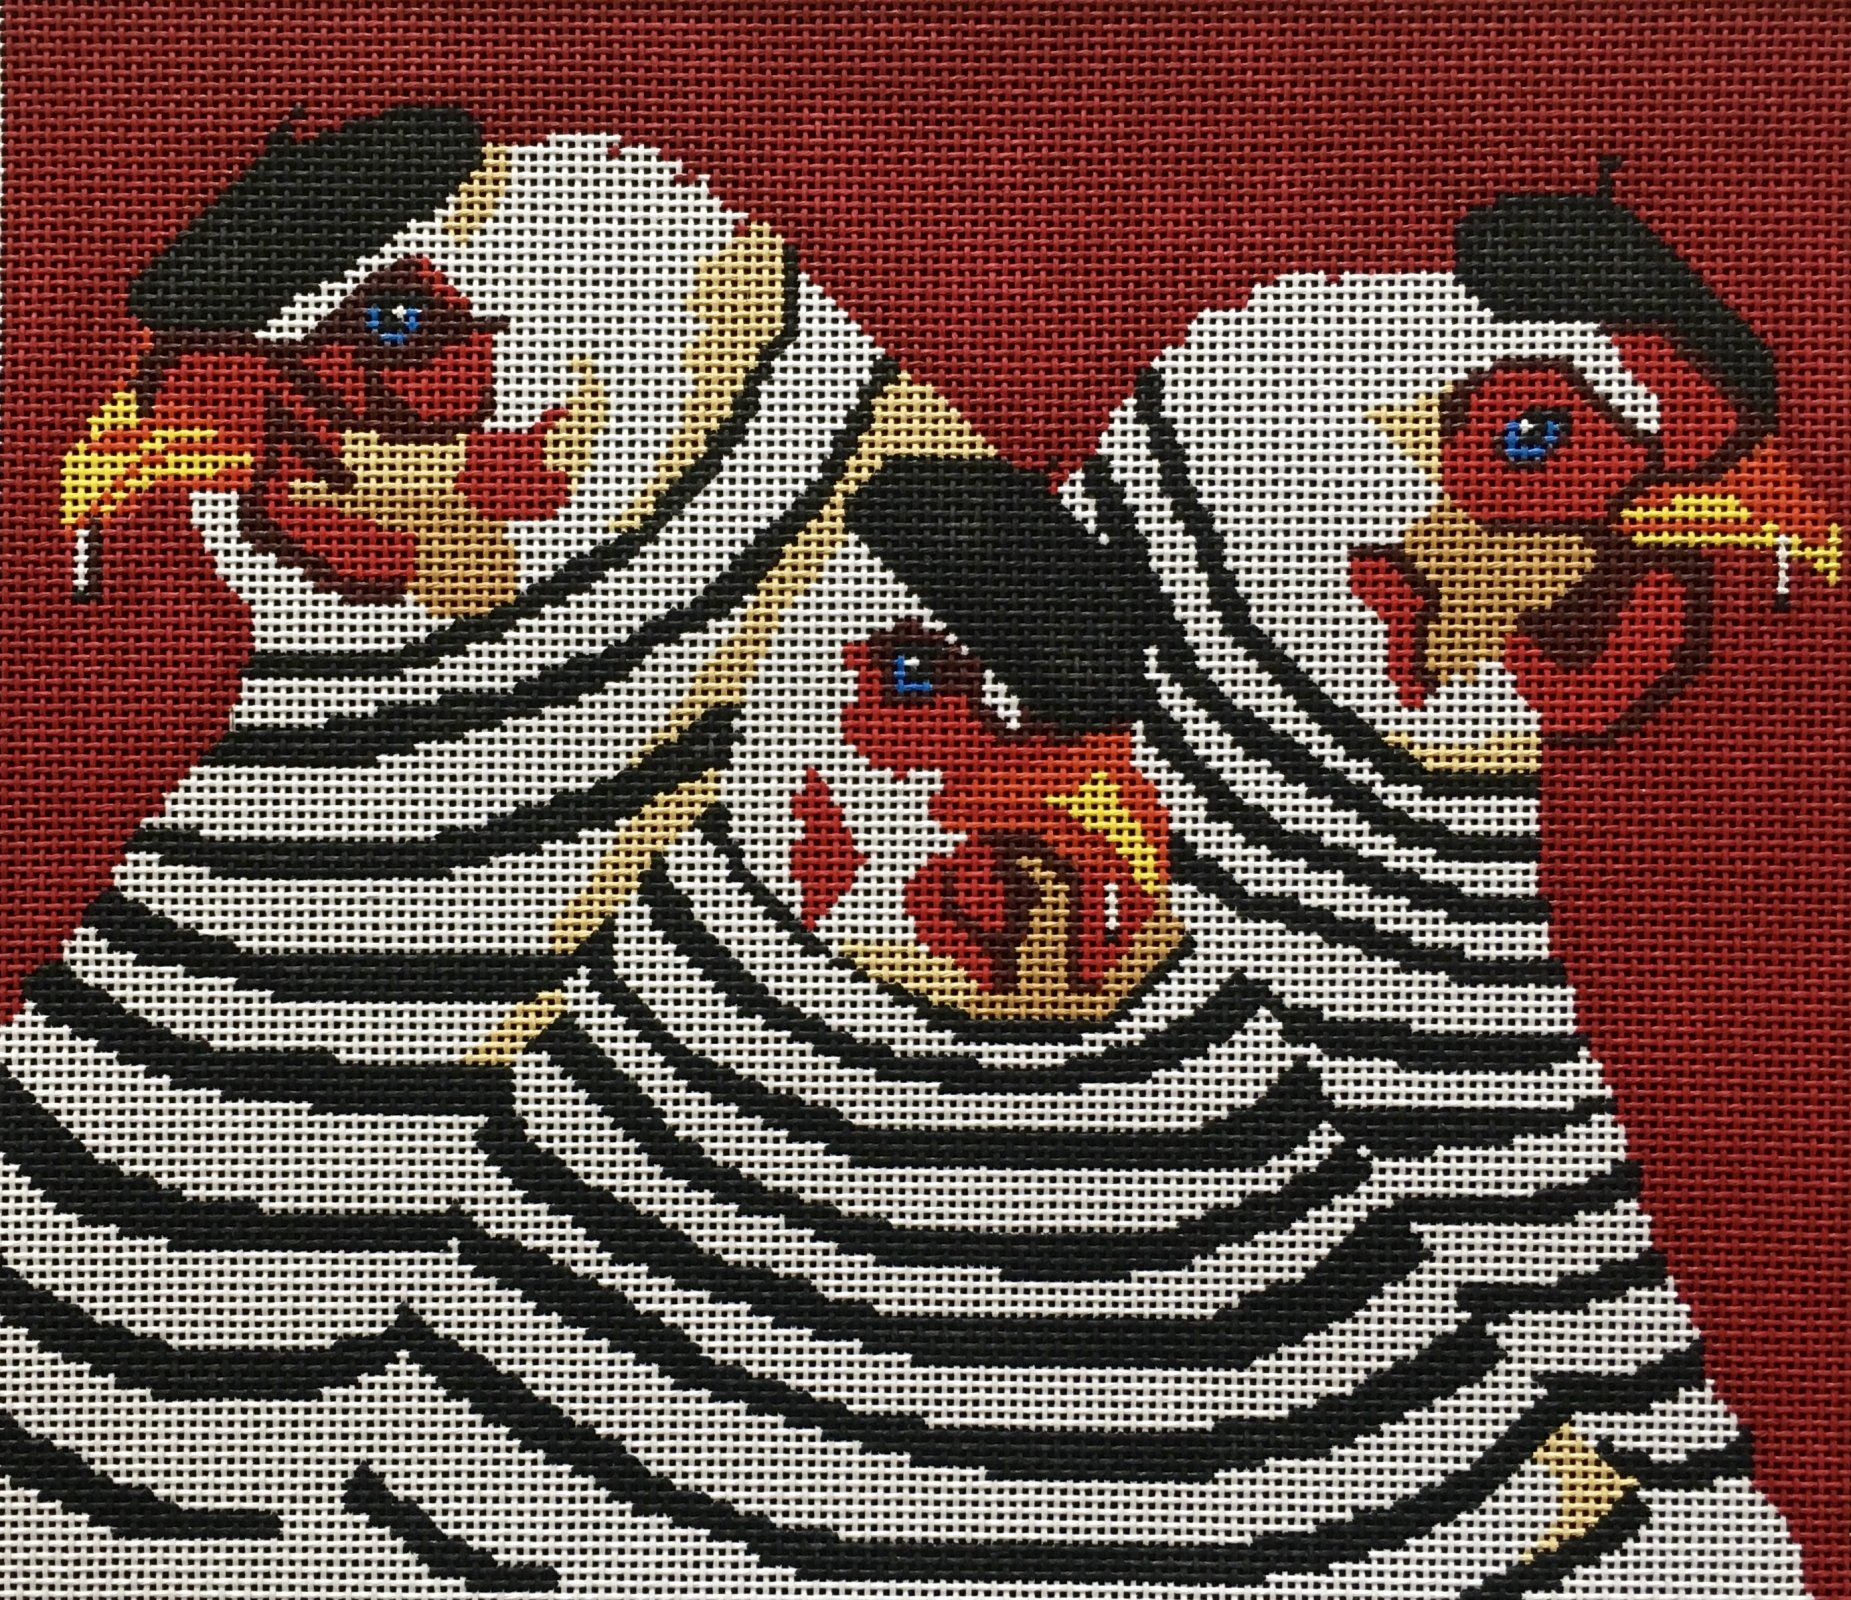 LFPL914 Three French Hens on Red